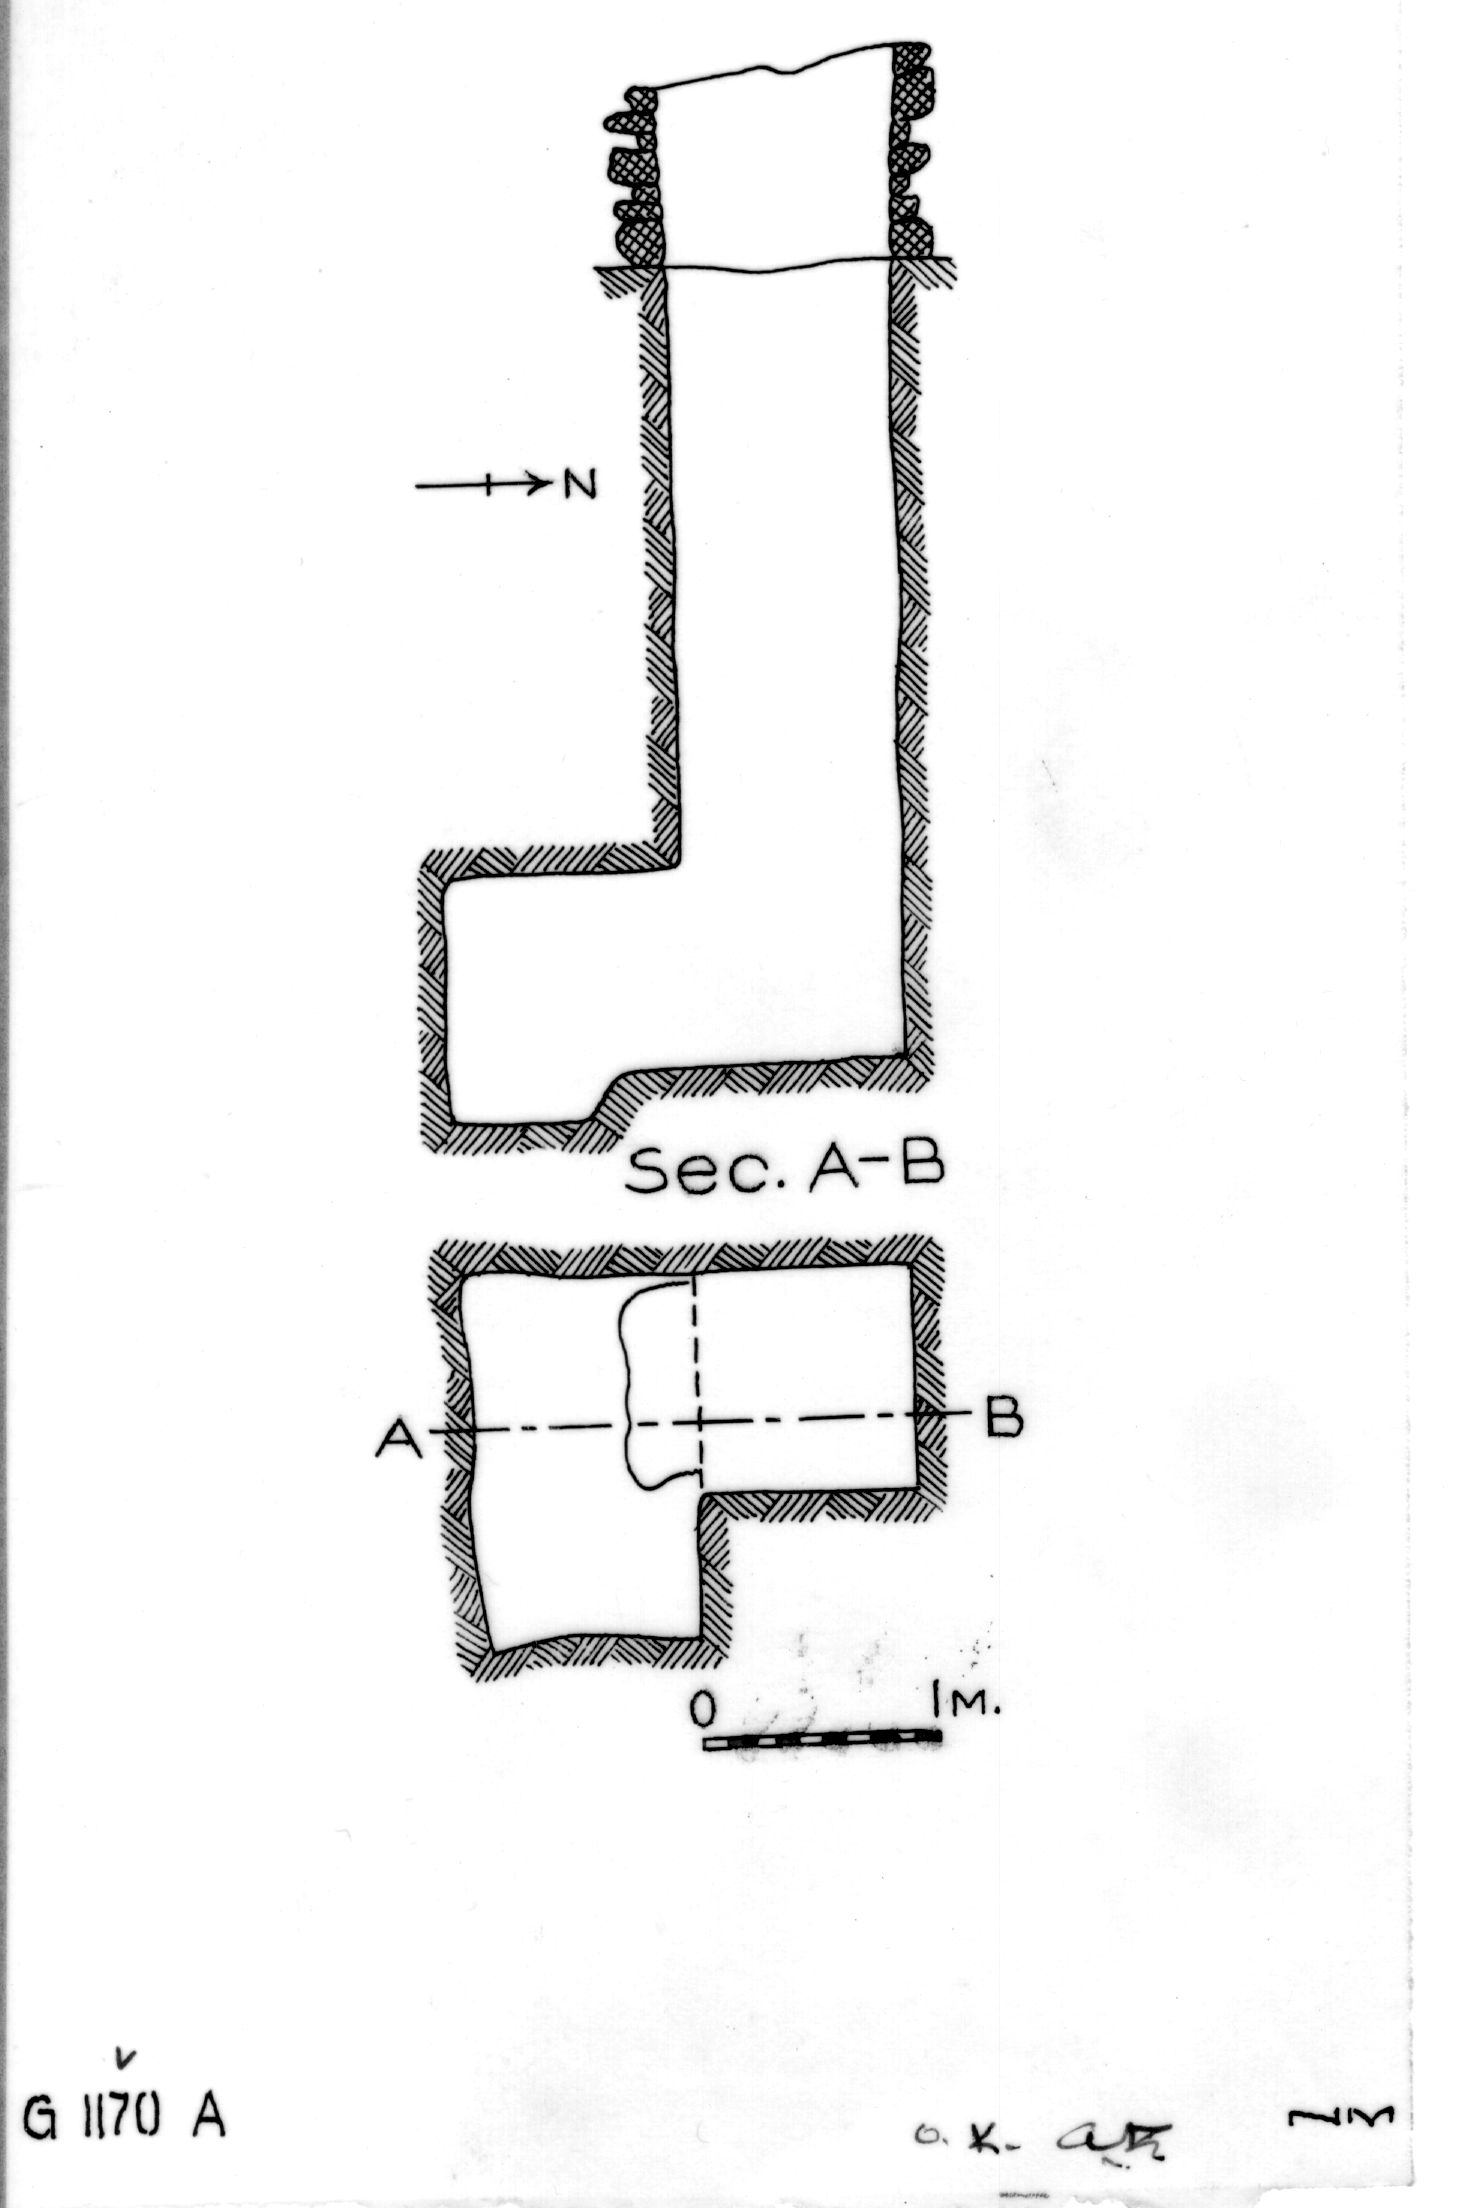 Maps and plans: G 1170, Shaft A